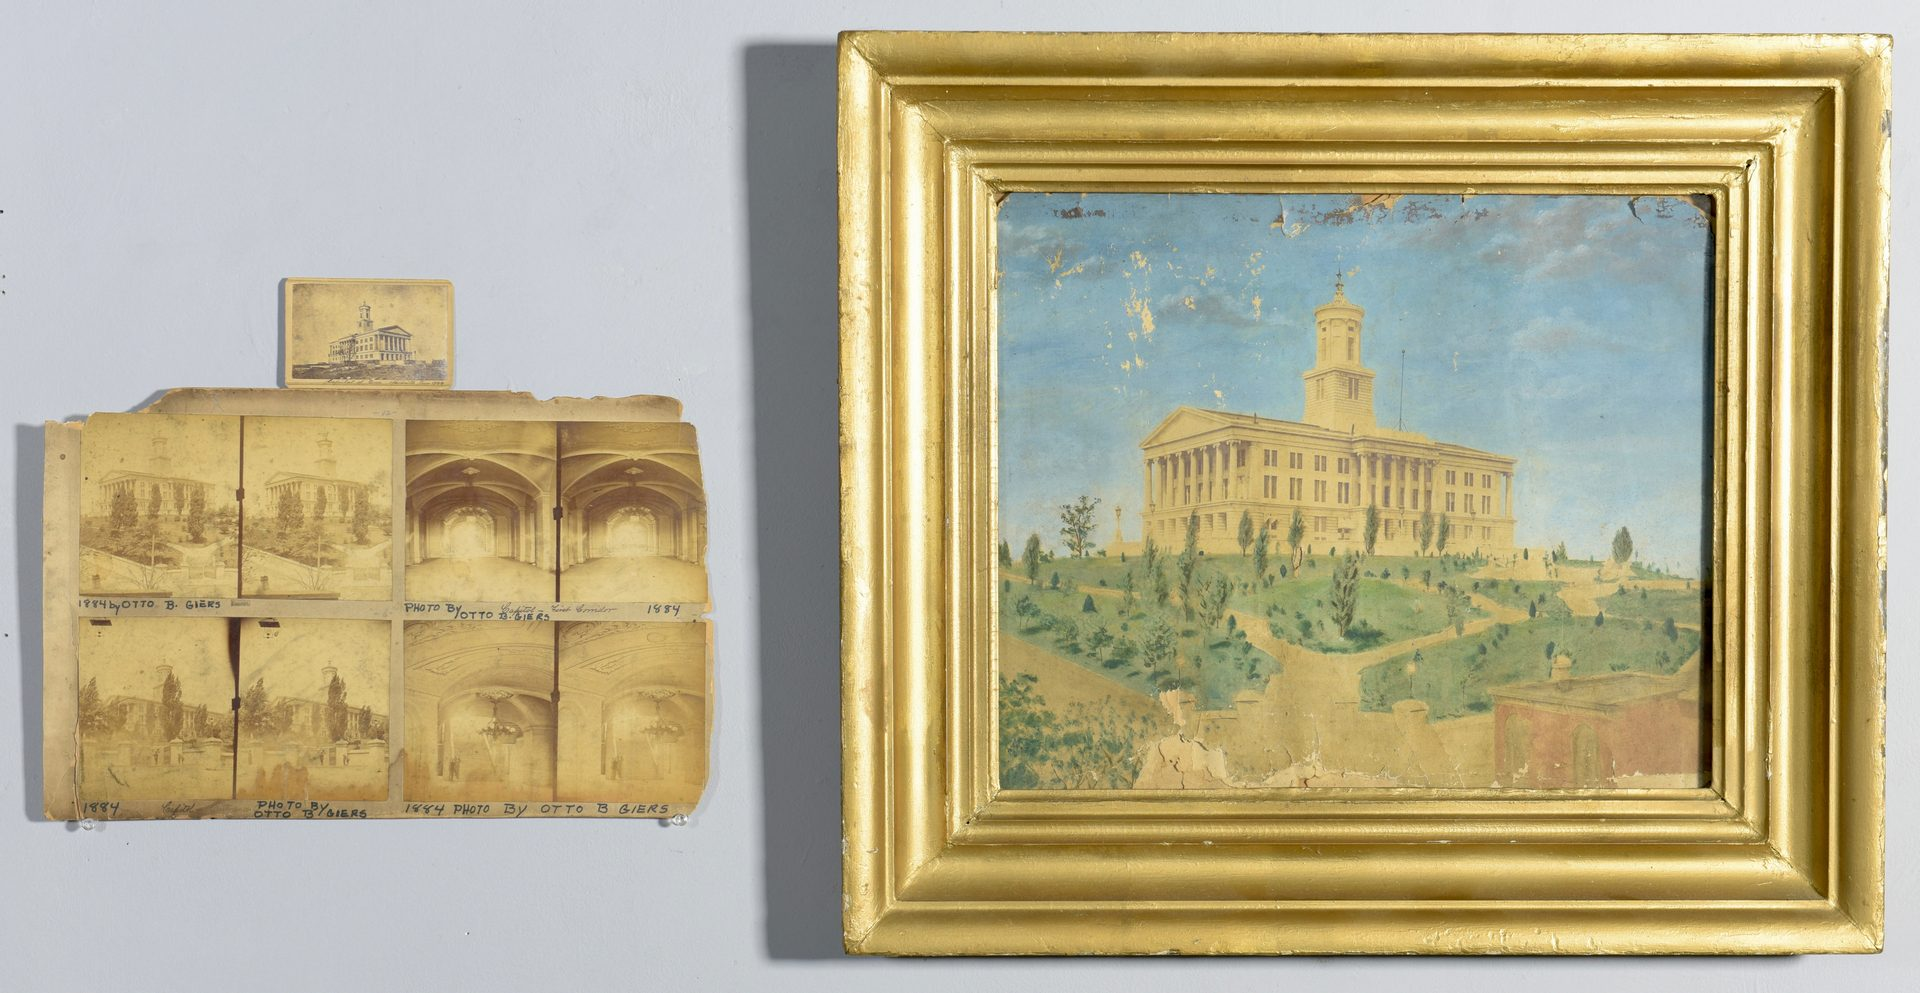 Lot 234: Early Photographic Views of TN Capitol